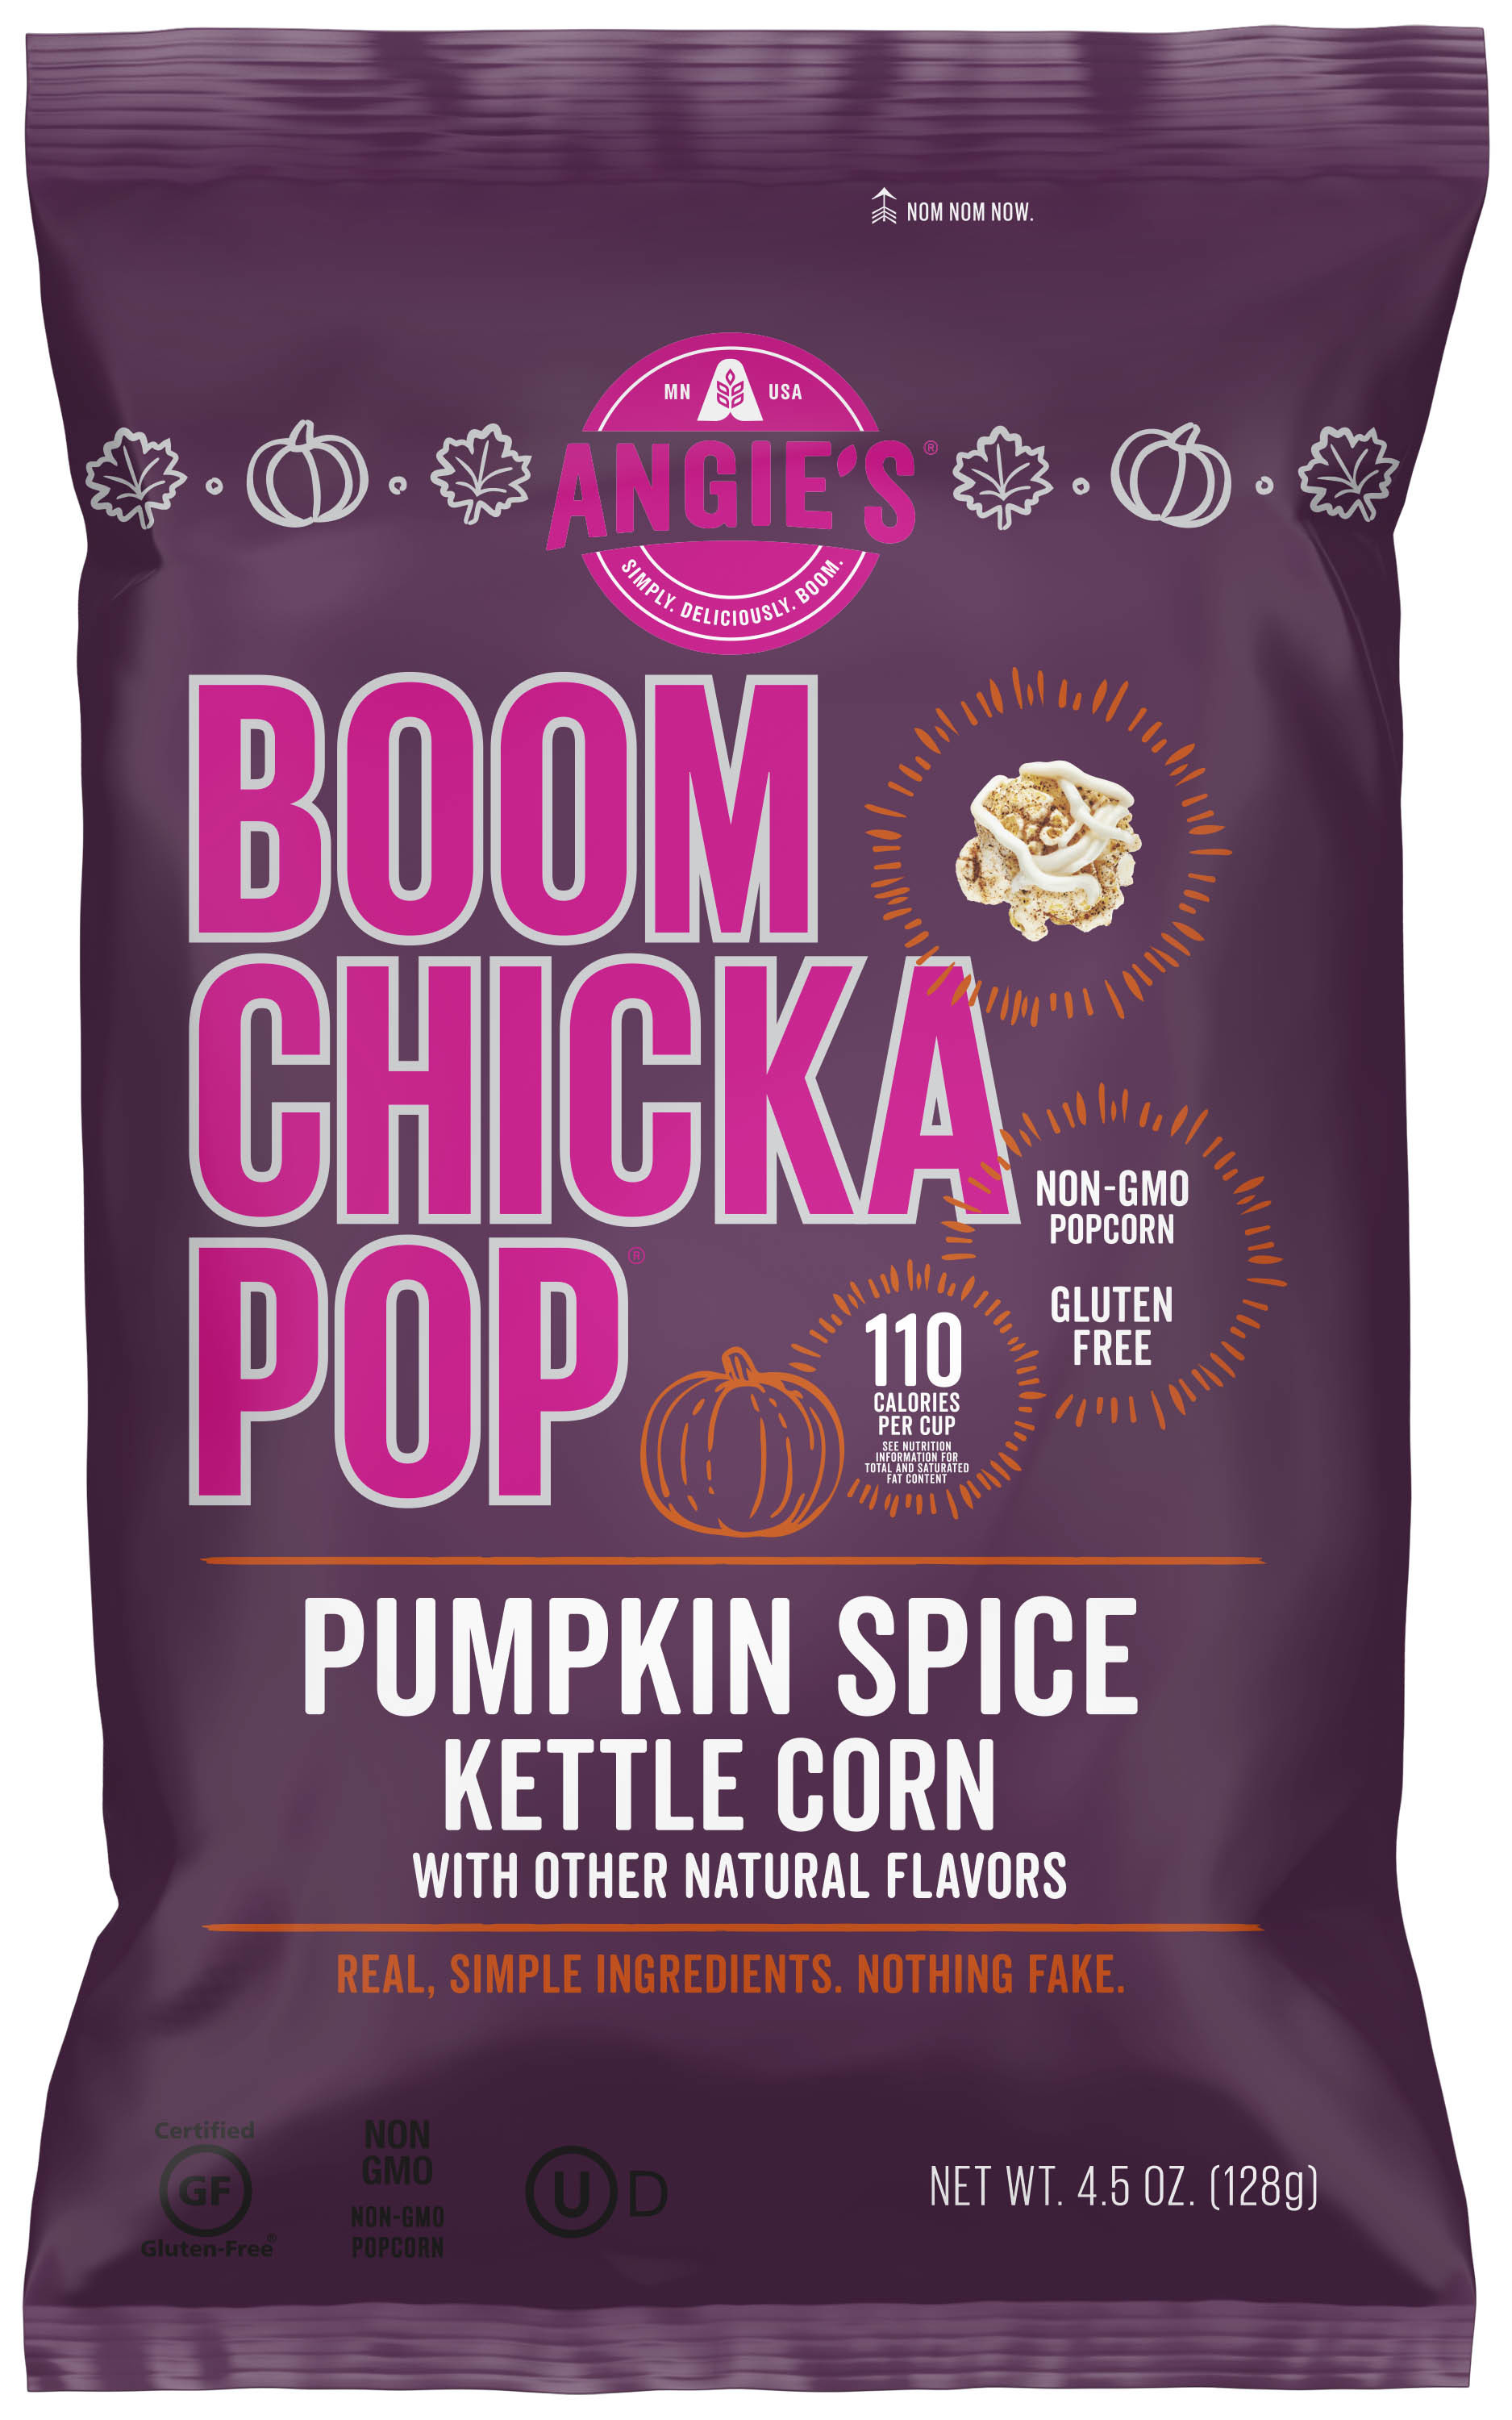 Angie's Boom Chicka Pop Pumpkin Spice Kettle Corn